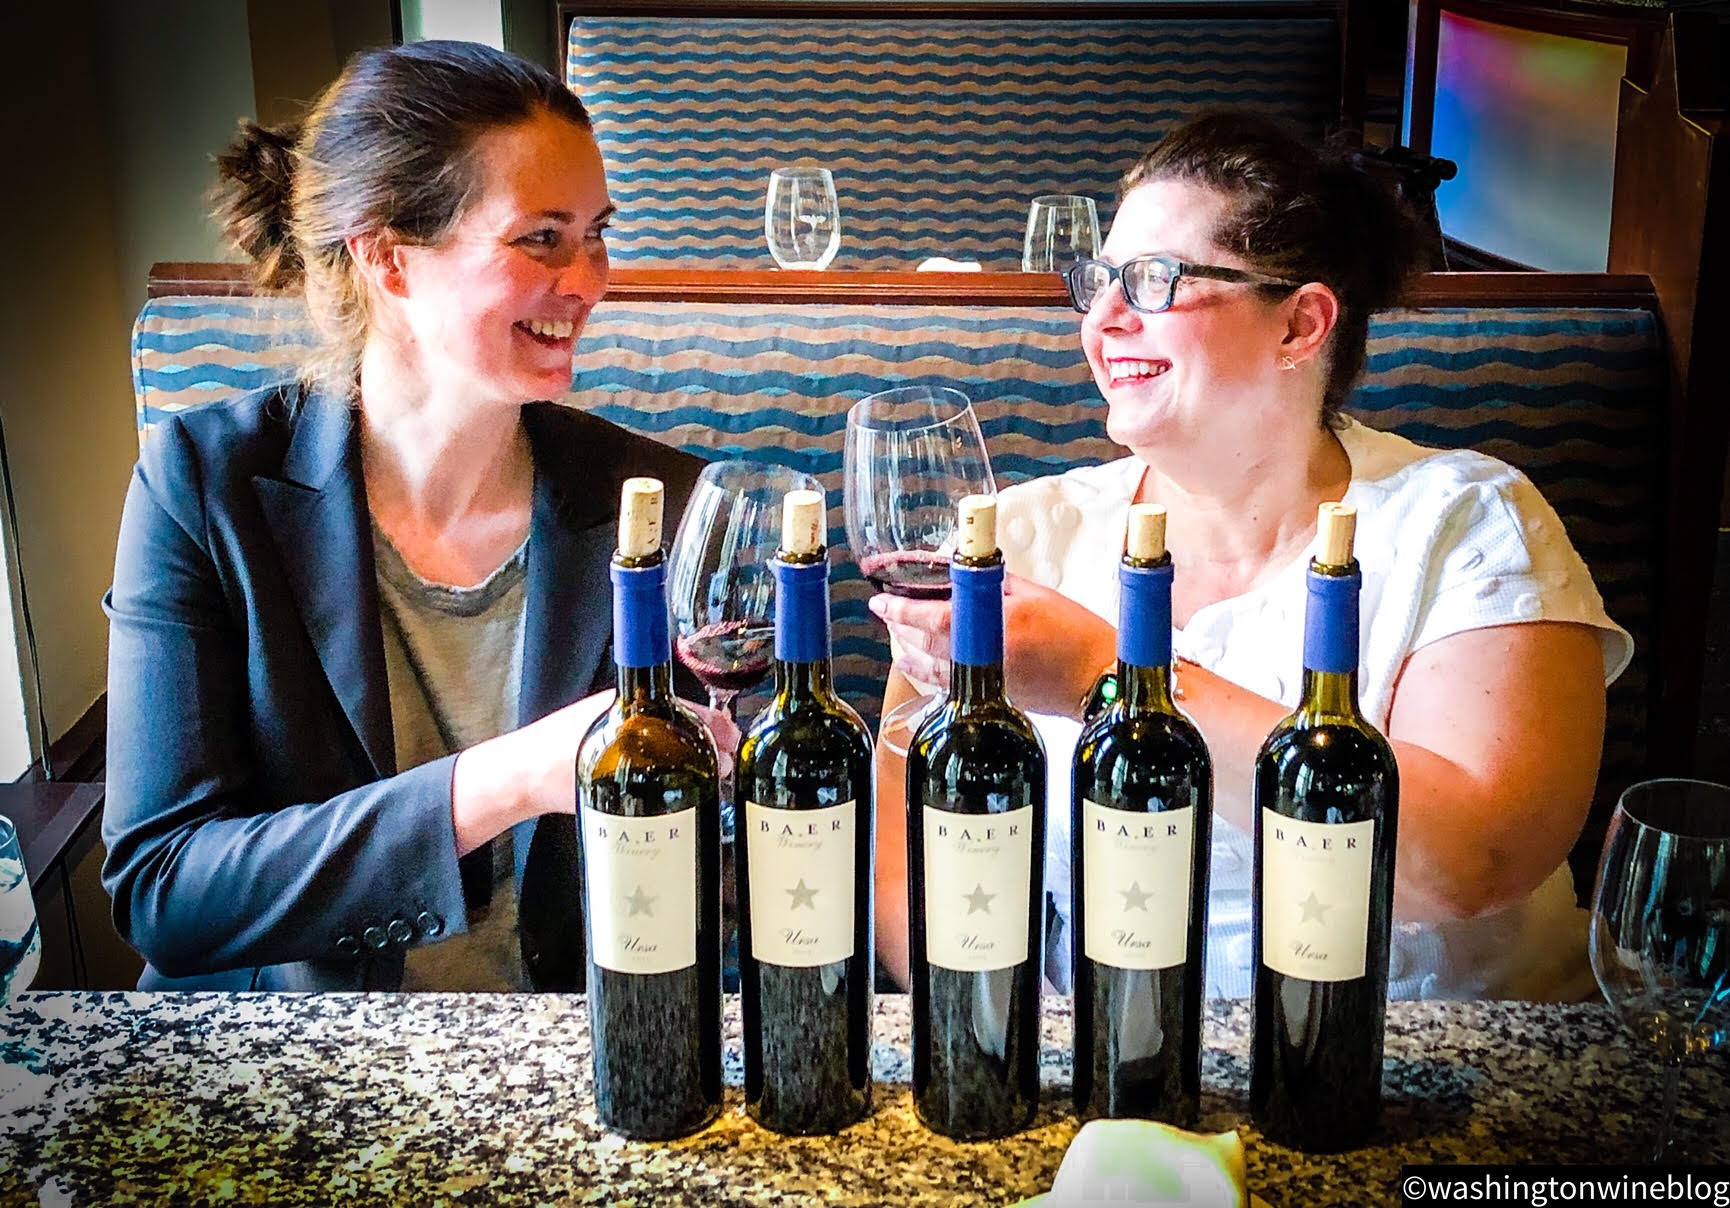 It was a magical evening as we explored one of the great boutique Washington wines, the Baer 'Ursa' red wine with Baer winemaker Erica Orr (L) and owner Lisa Baer (R).